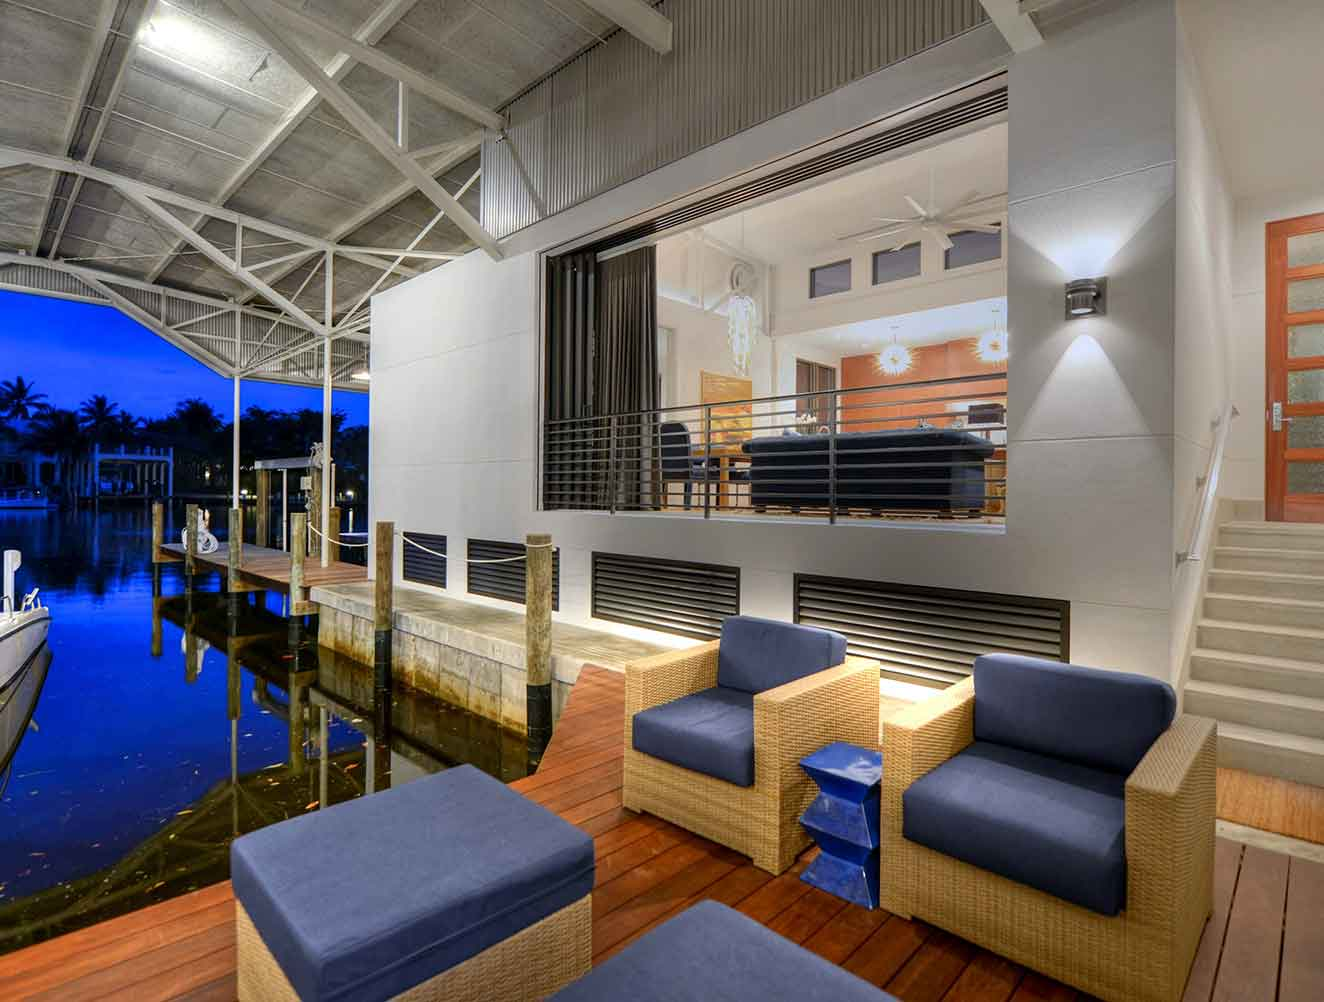 Dock Entry at the Boat House Residence in Naples Florida, single family home designed by Kukk Architecture & Design Naples Architecture Firm